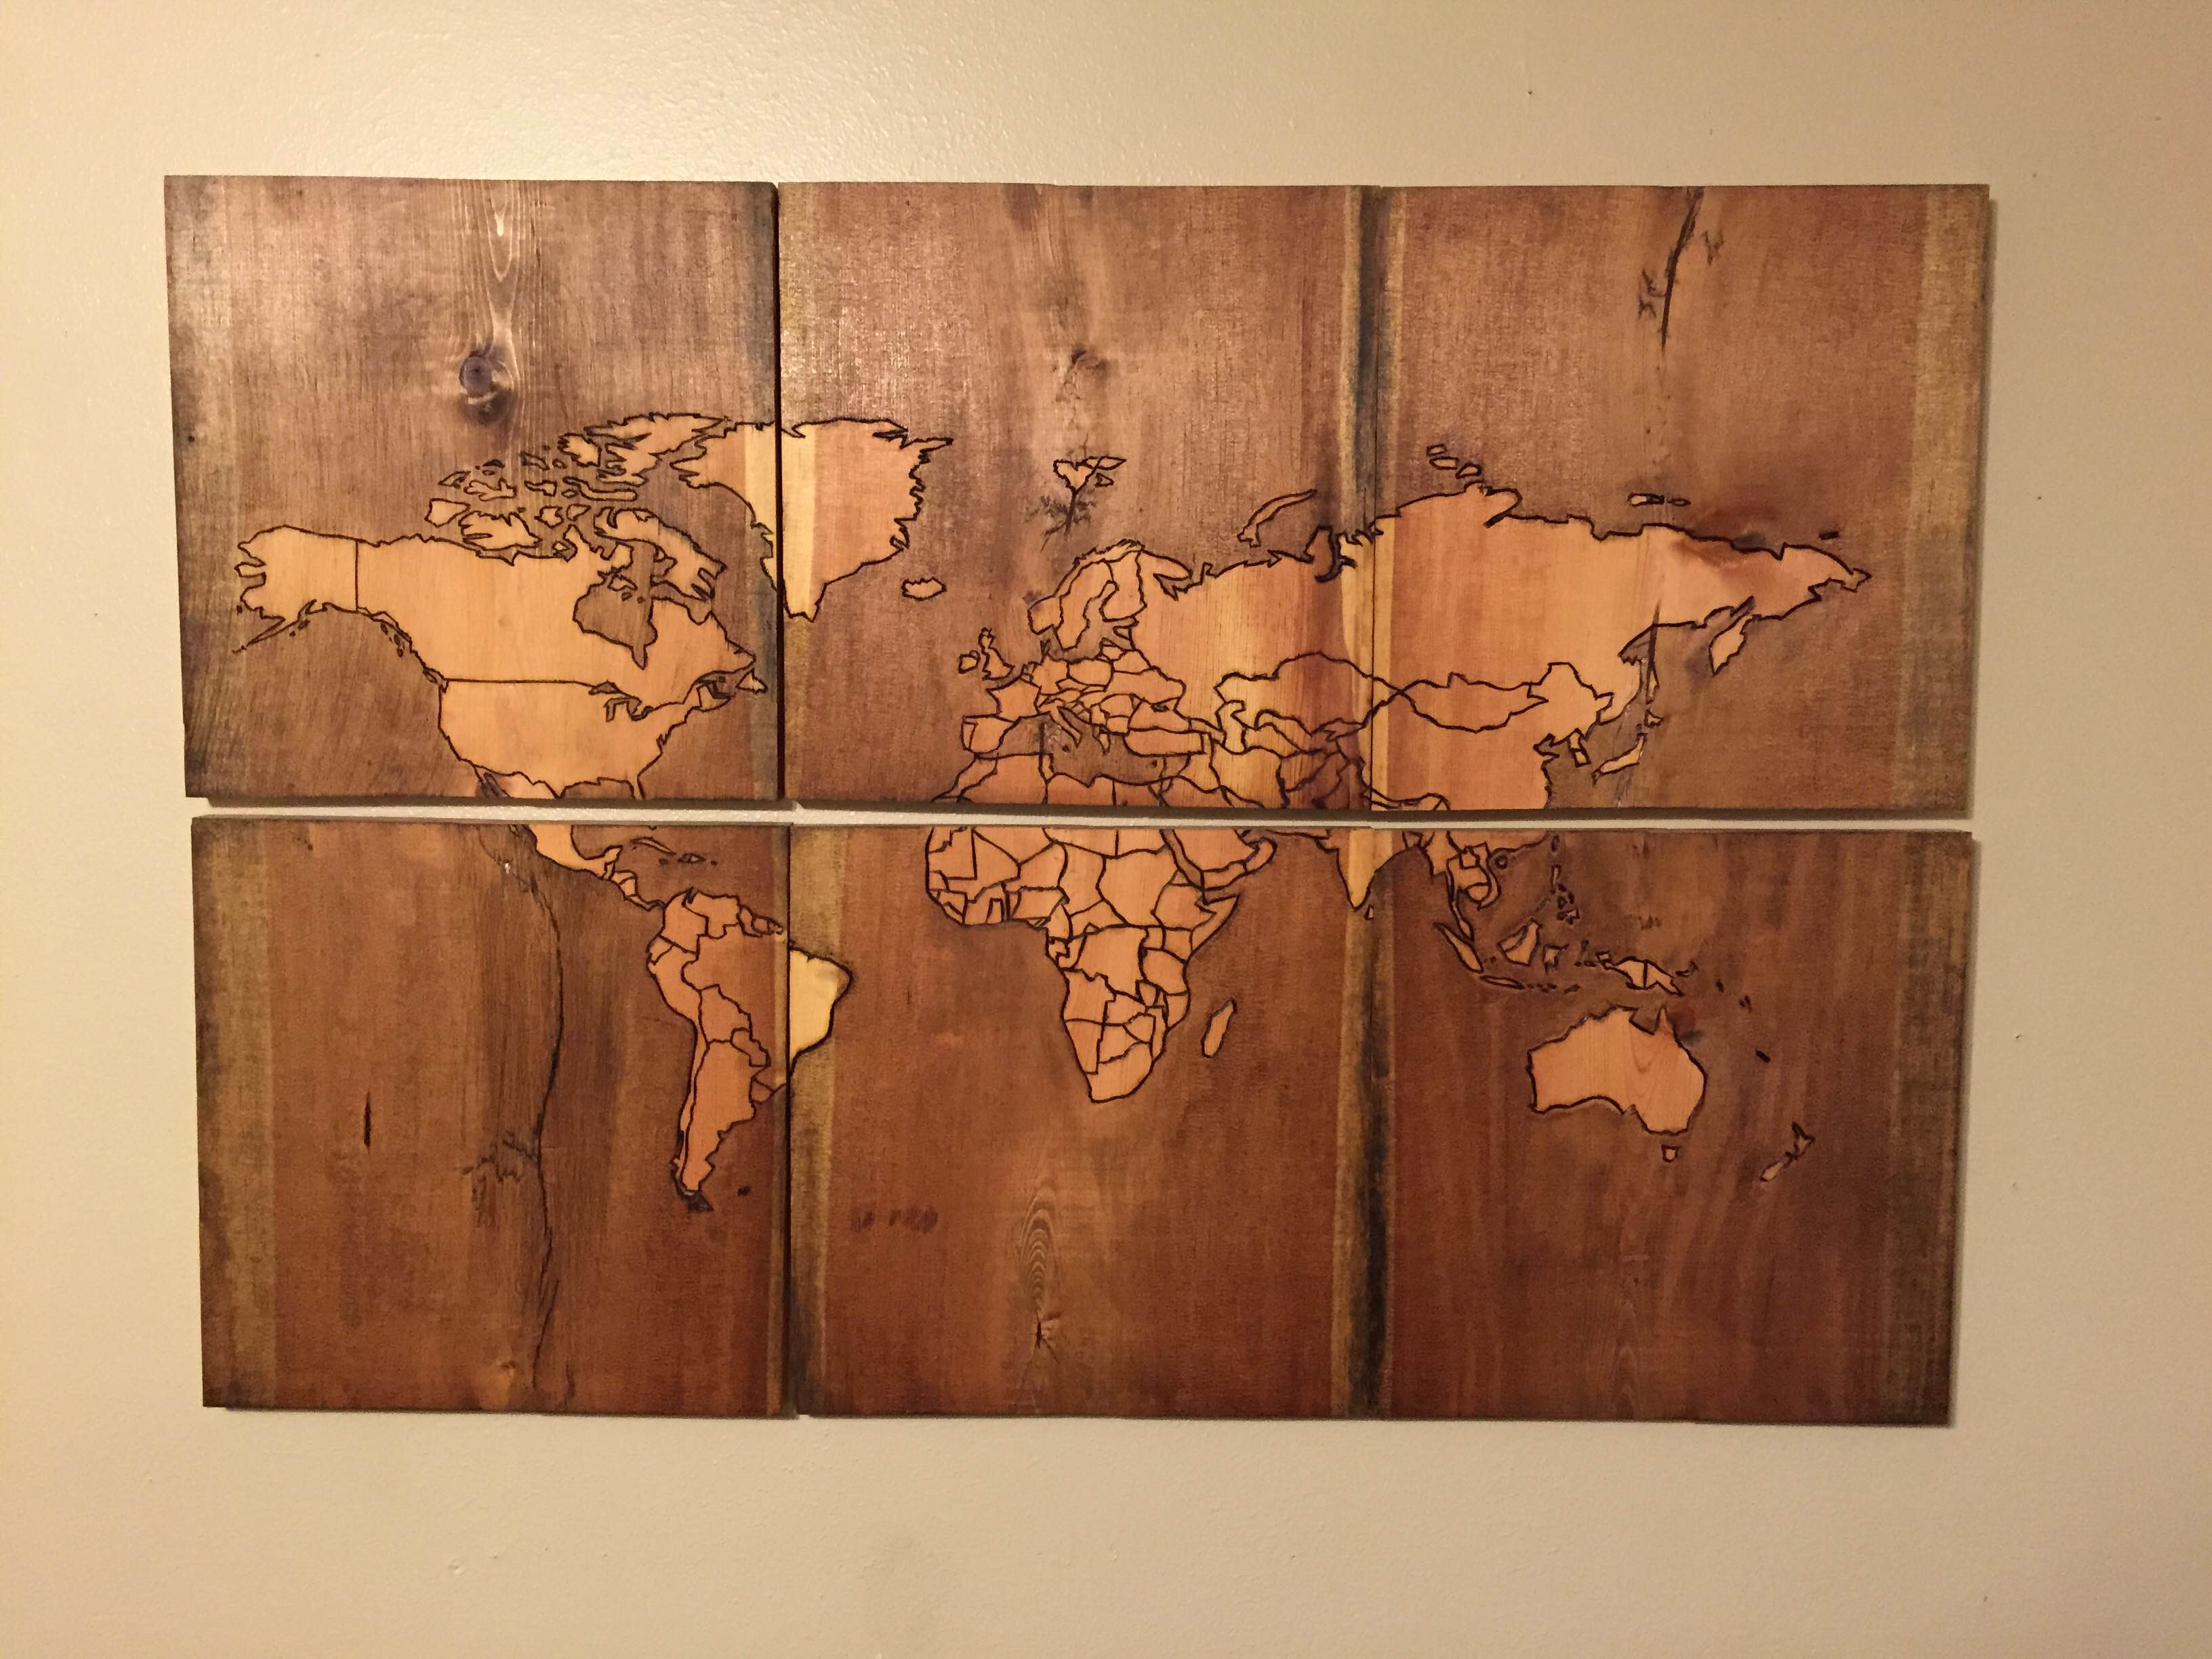 Beautiful Map of the World, Burned Into Scrap Wood